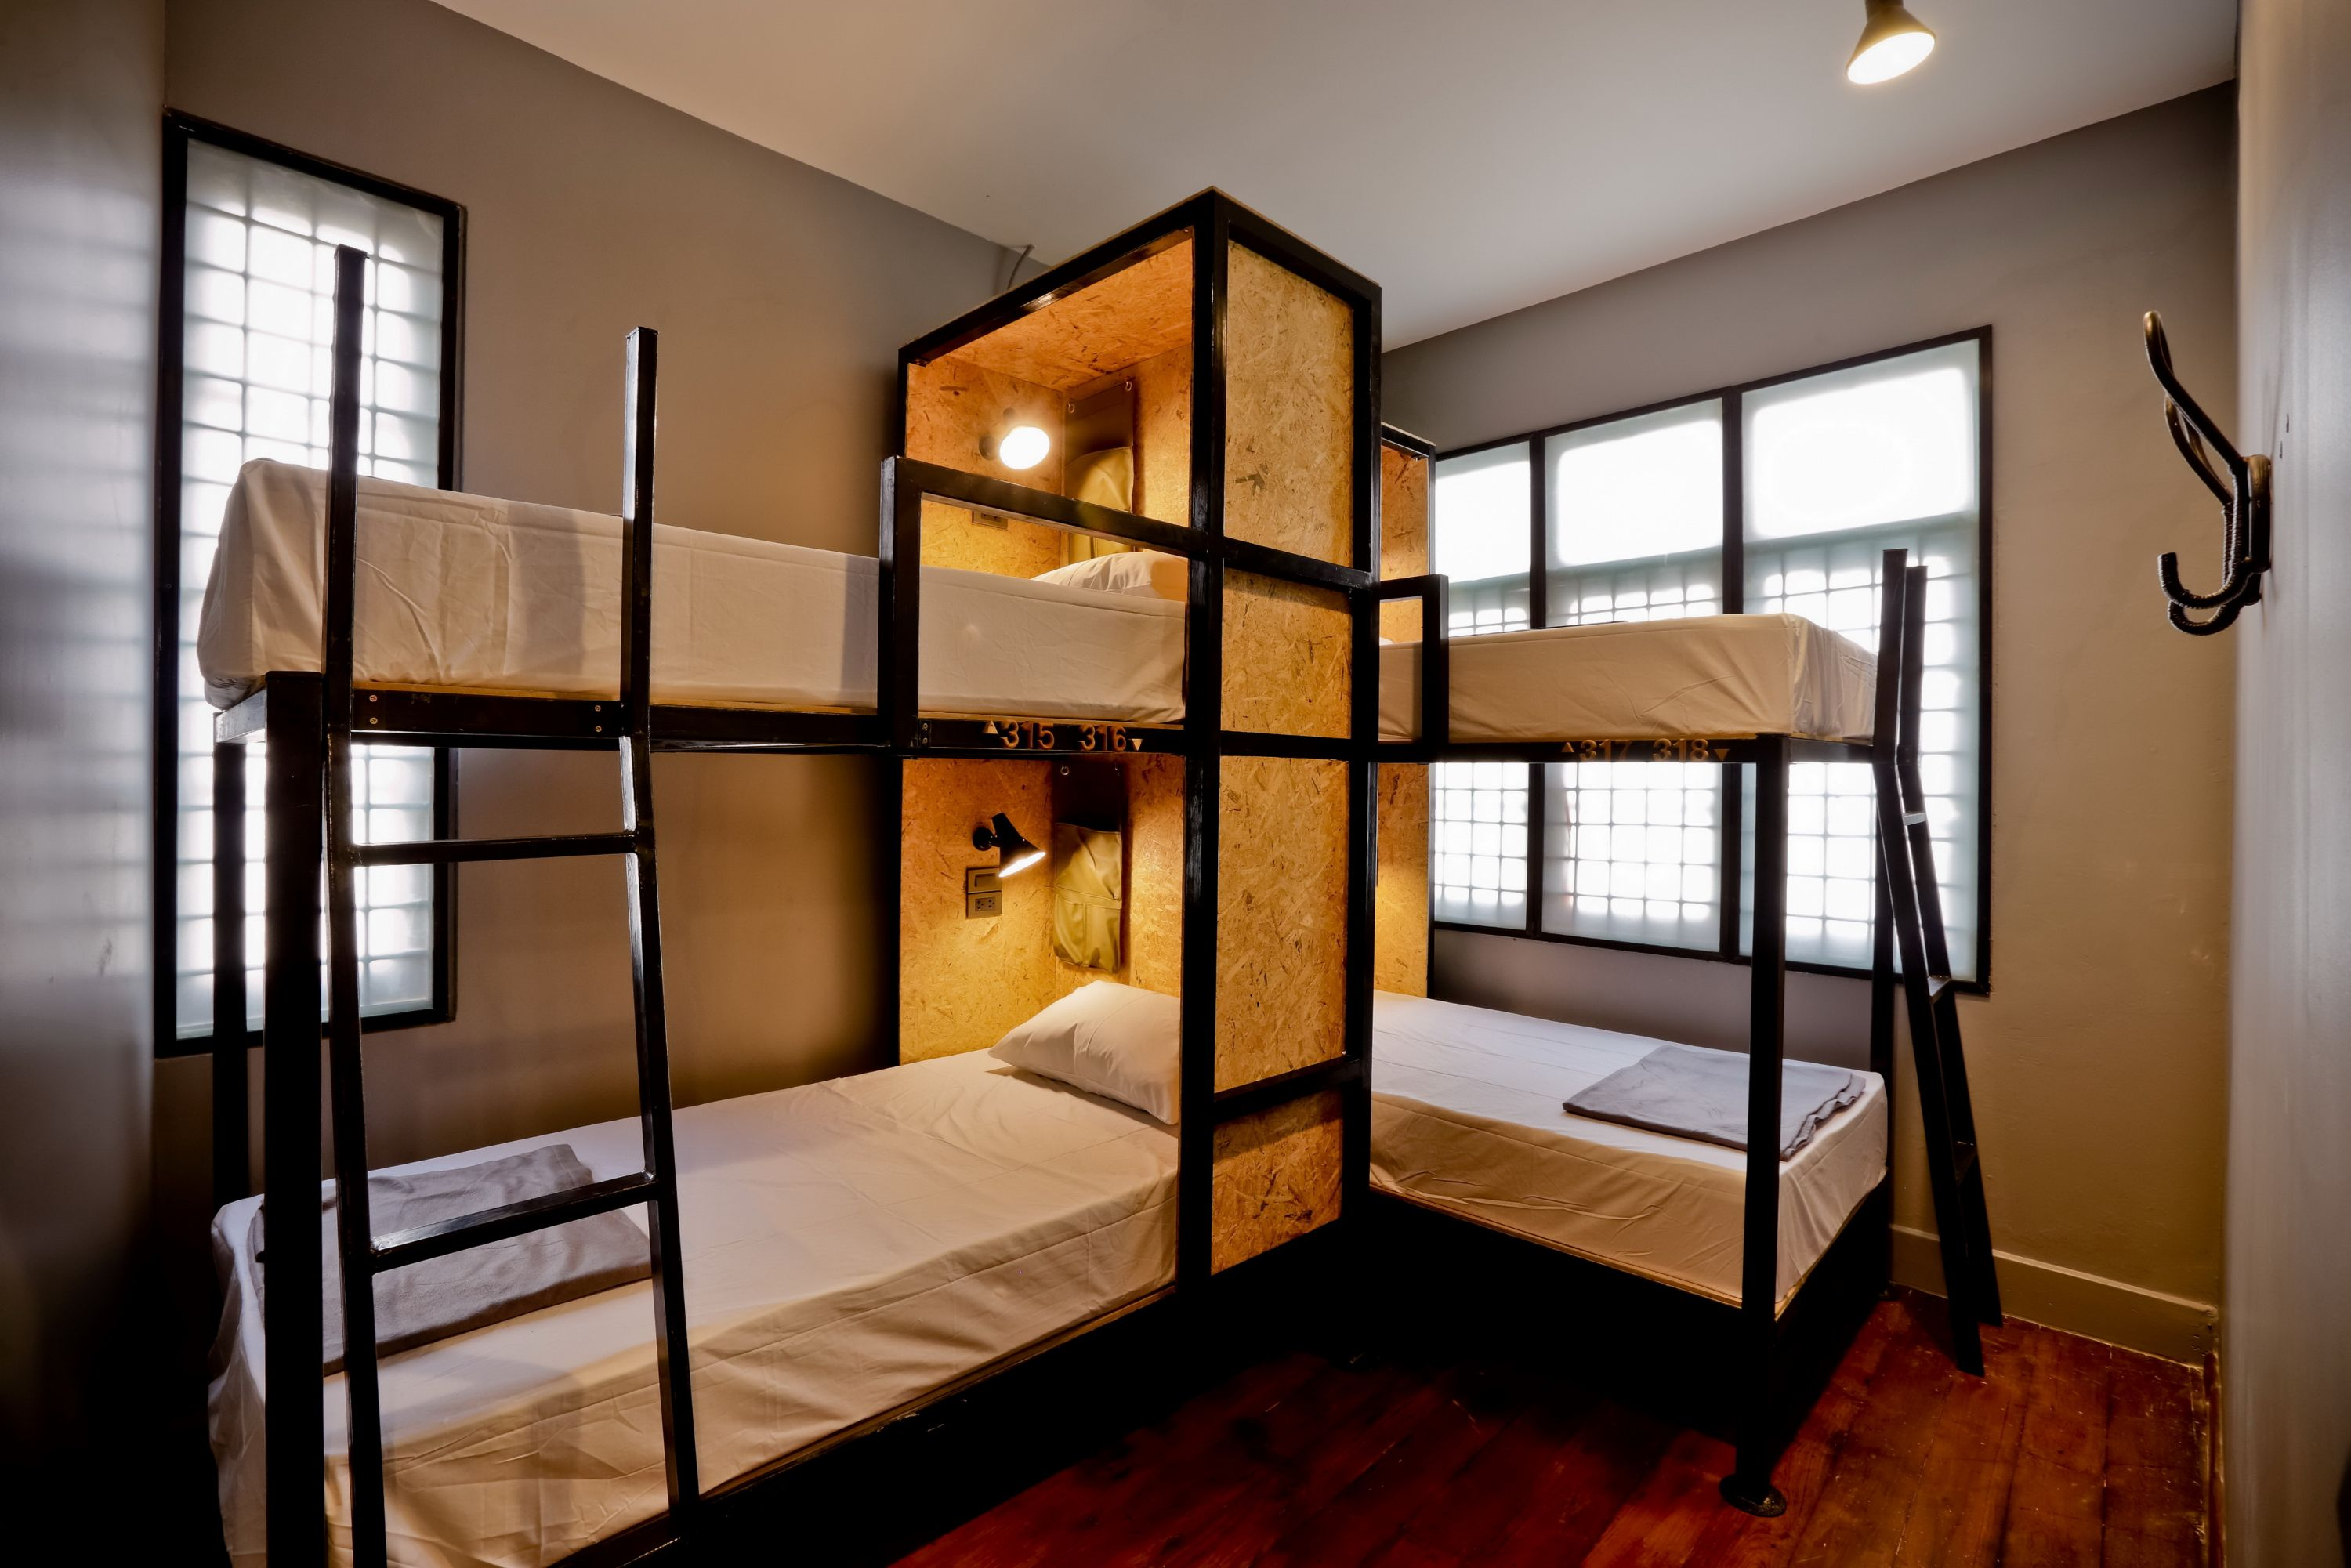 4 Thb 1 600 Room Or 450 Person 2 Bunk Beds